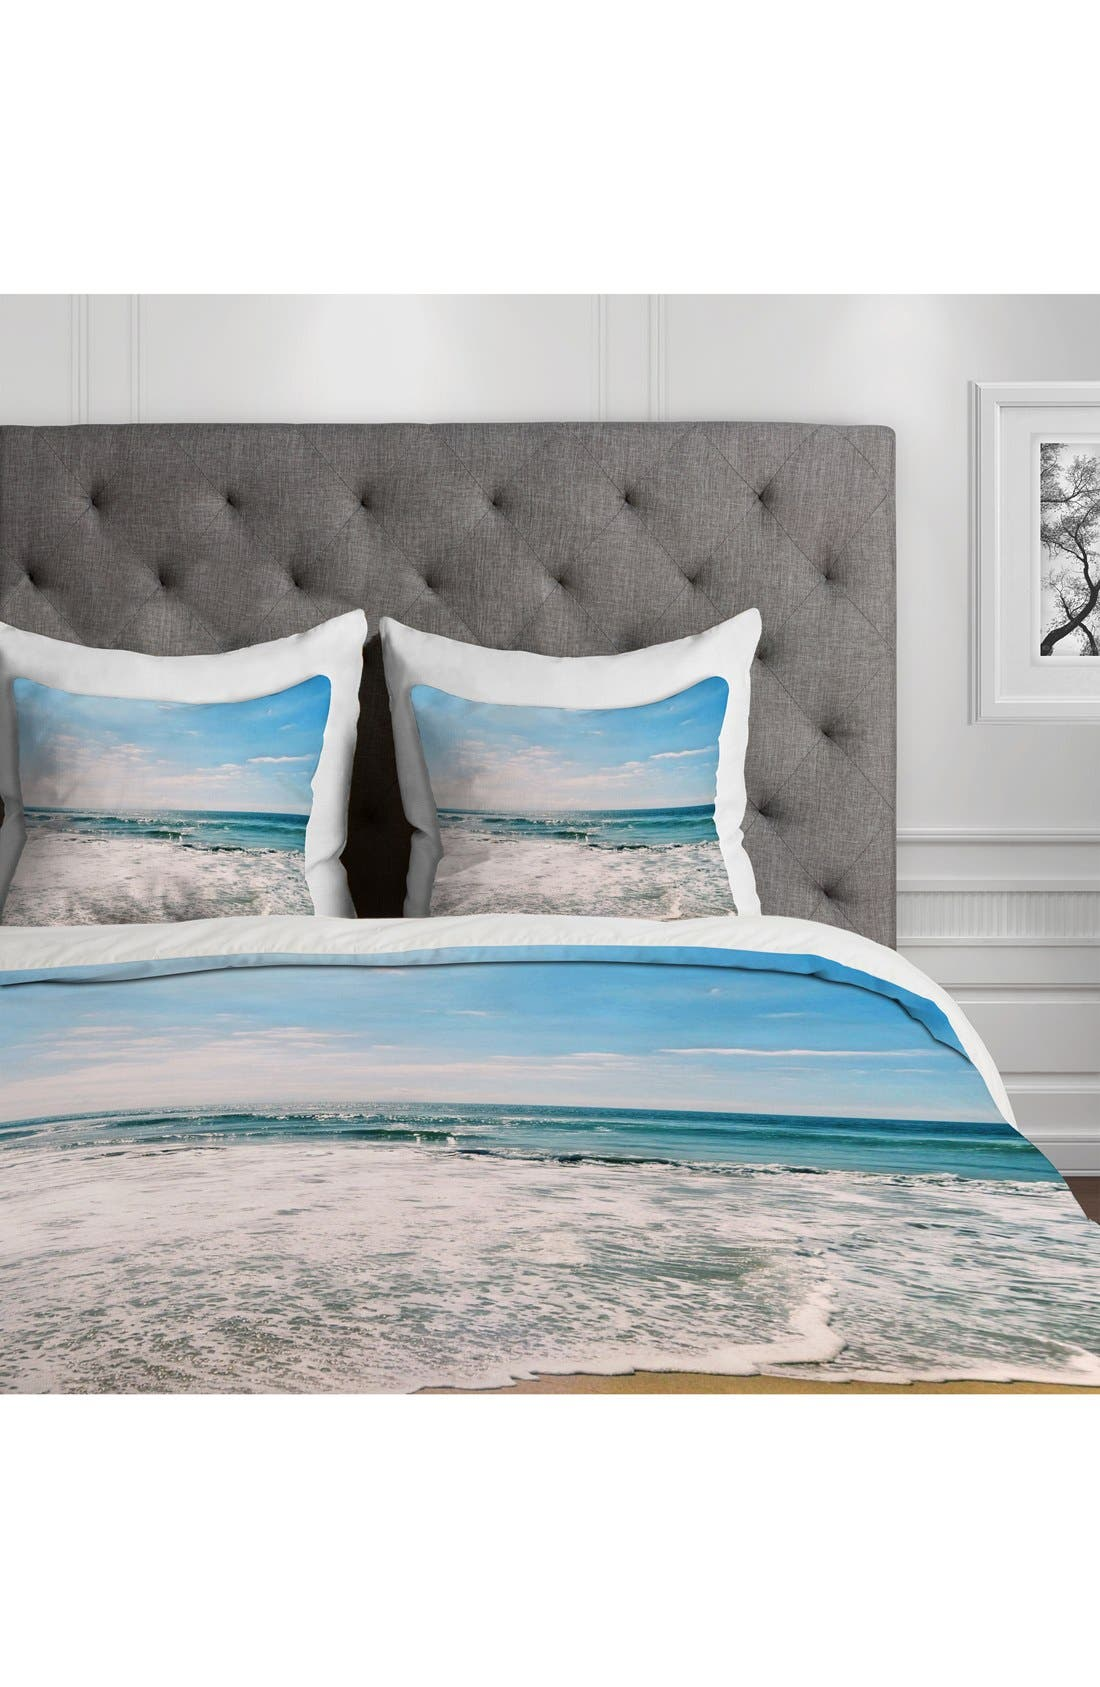 Take Me There Duvet Cover & Sham Set,                             Alternate thumbnail 3, color,                             400